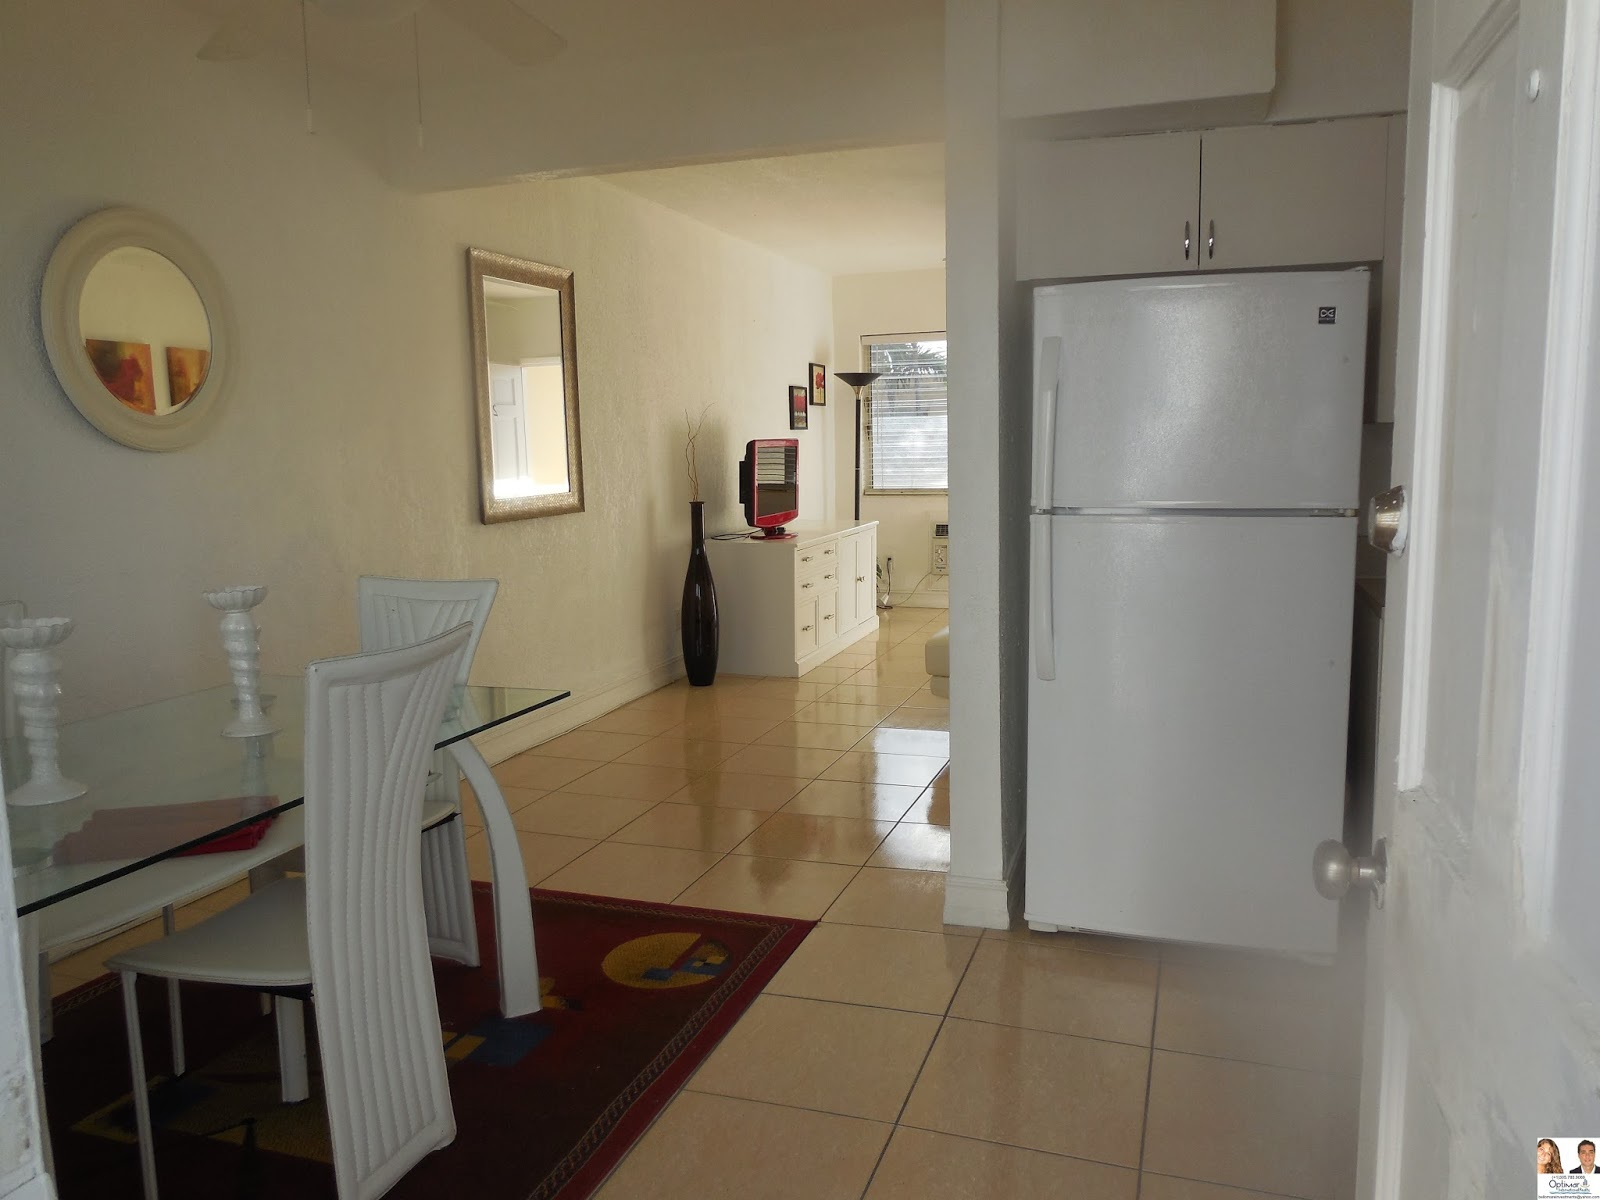 Condos In Miami Beach For Sale By Owner